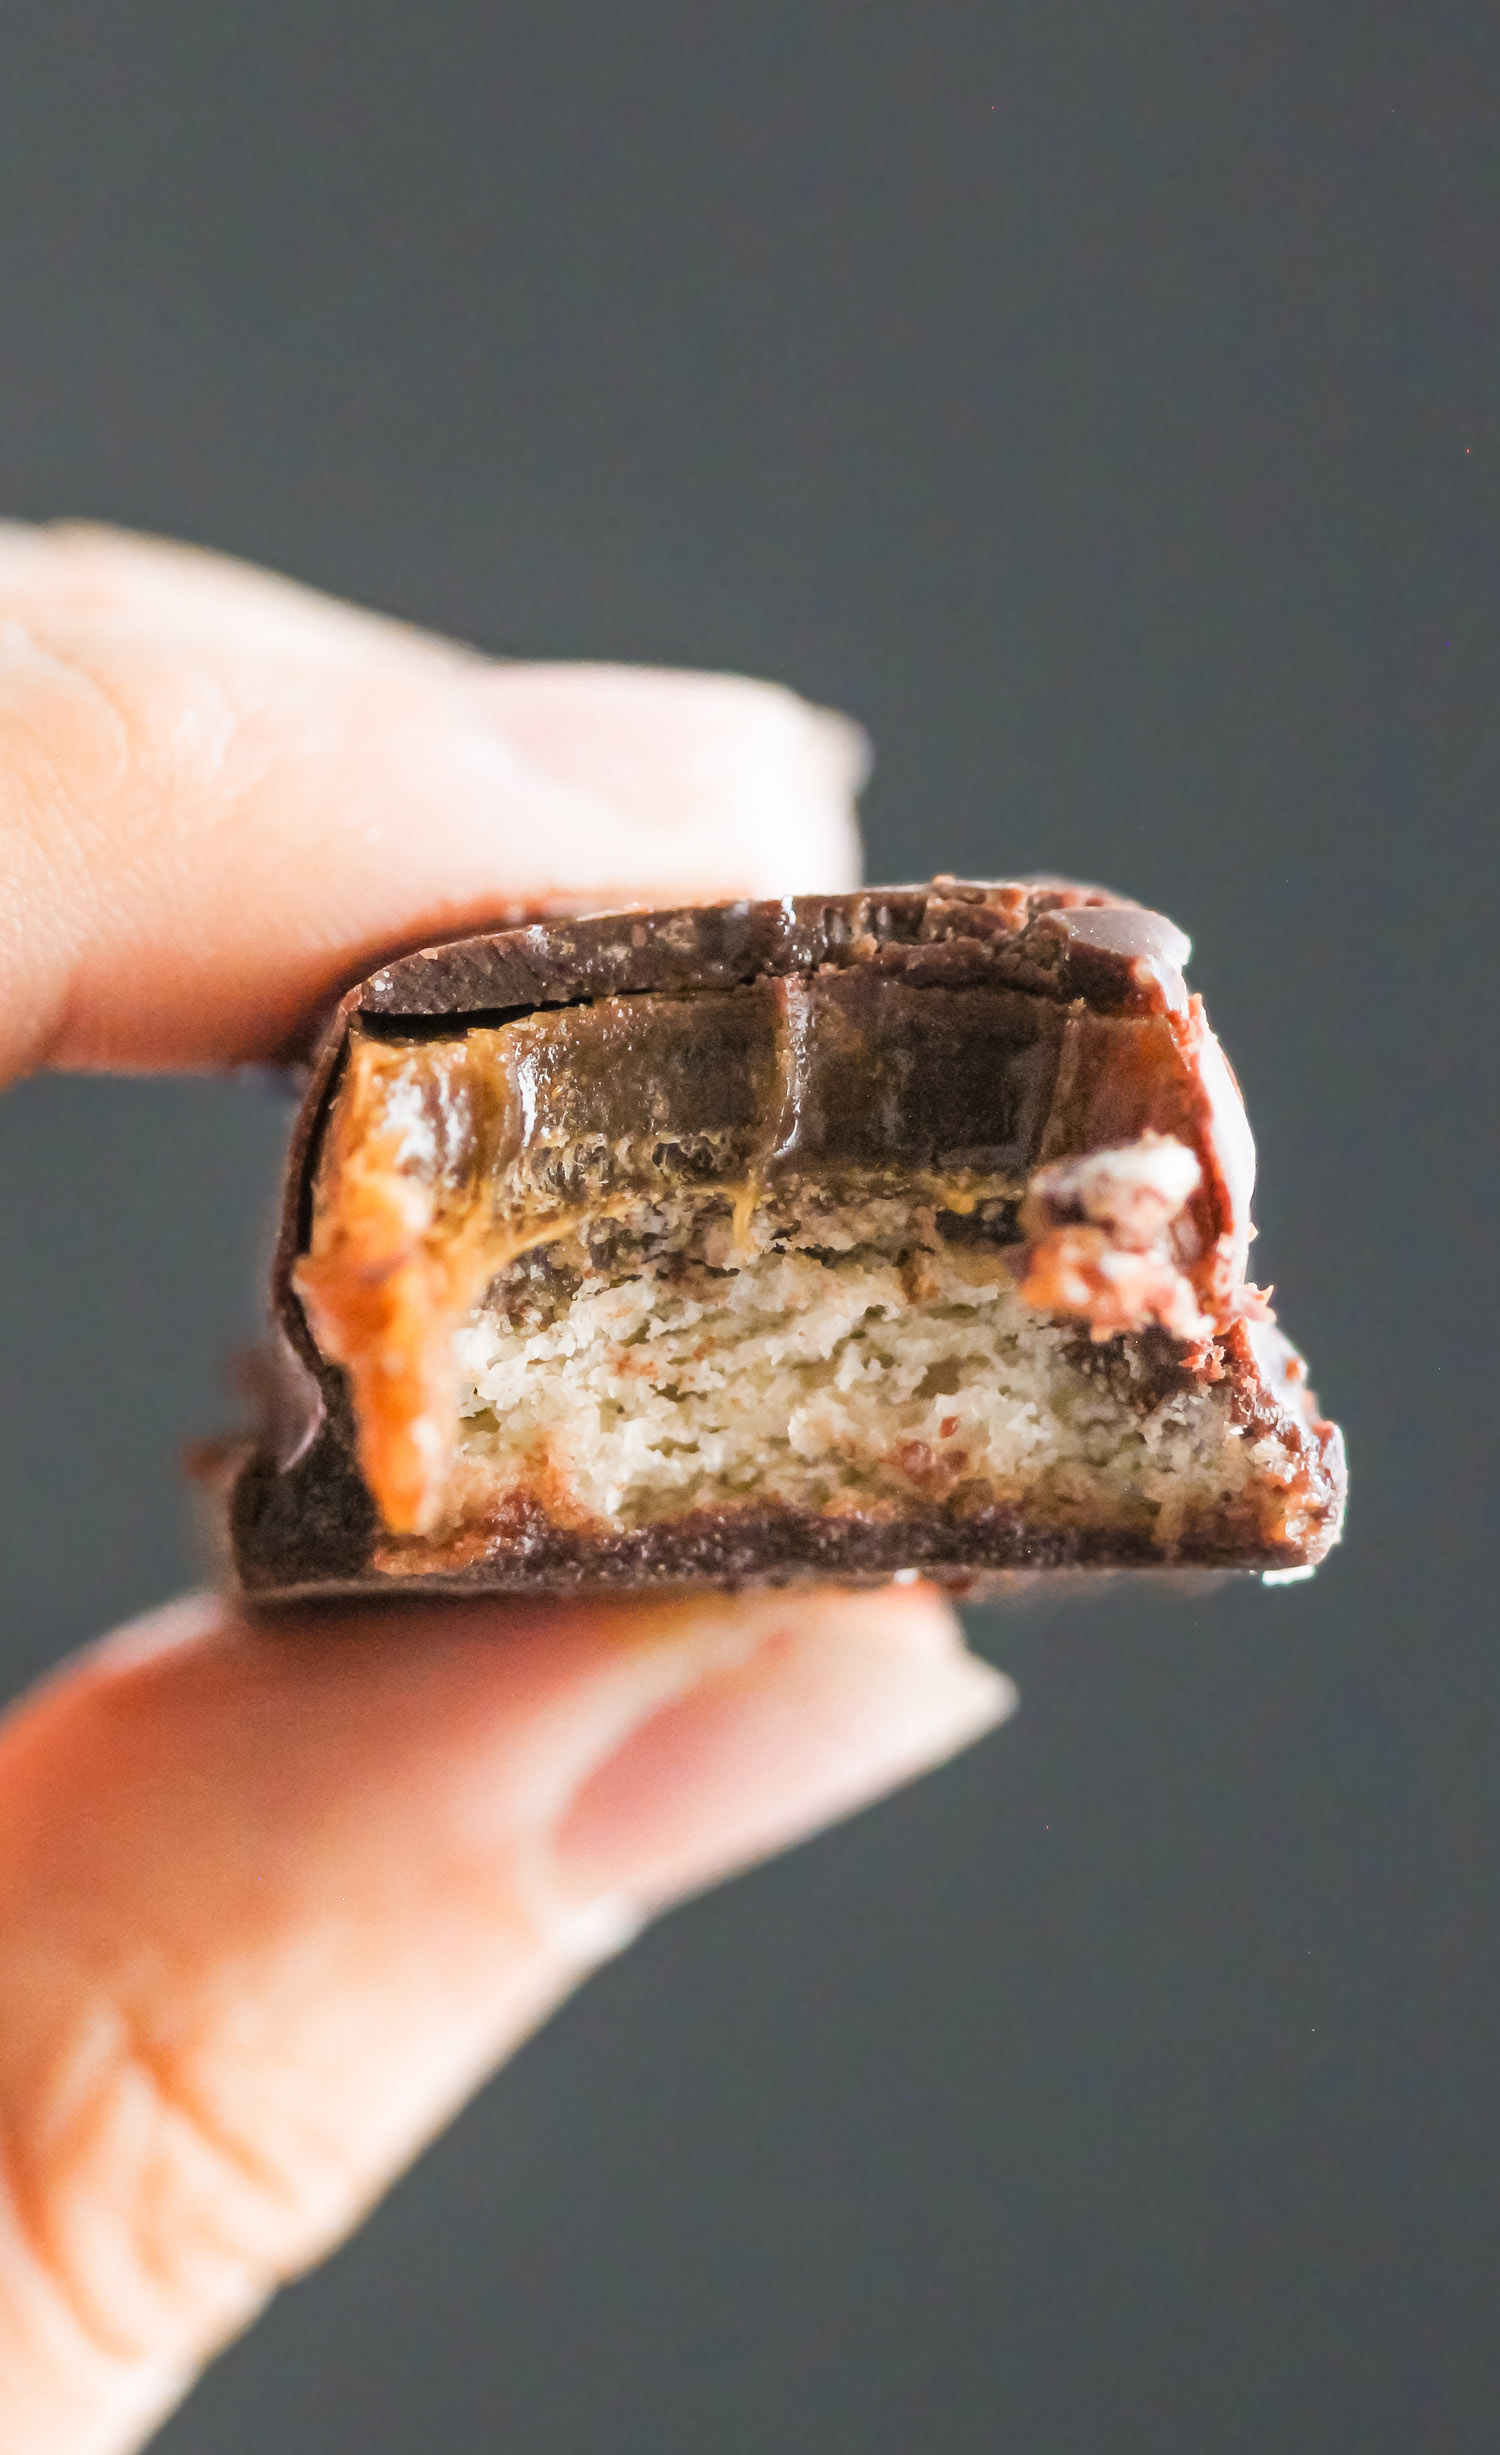 These guilt free homemade Twix candy bars are LIFE CHANGING. They taste just like the storebought kind, except these are all natural, vegan, dairy free, and reduced sugar. One bite and you'll think you're eating something full of sugar, fat, and calories, but you're not! Healthy Dessert Recipes with sugar free, low calorie, low fat, high protein, and gluten free options at the Desserts With Benefits Blog (www.DessertsWithBenefits.com)